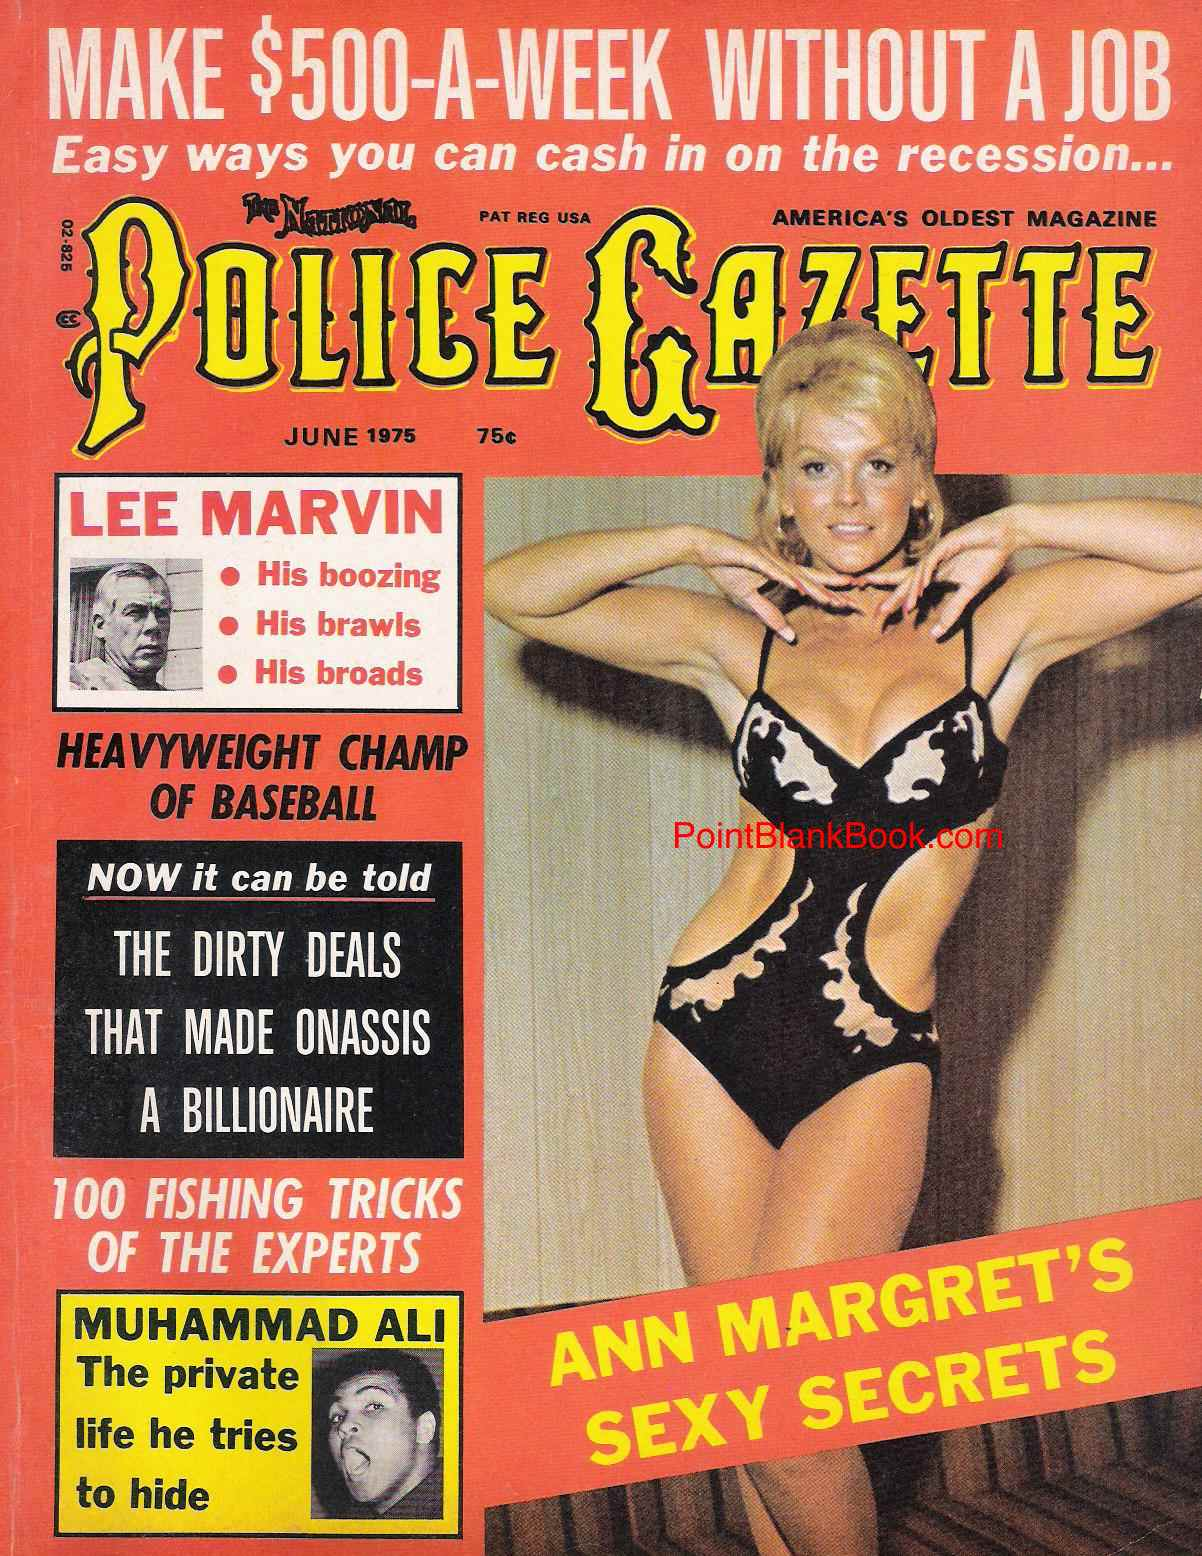 June 1975 cover of Police Gazette featuring Lee Marvin.